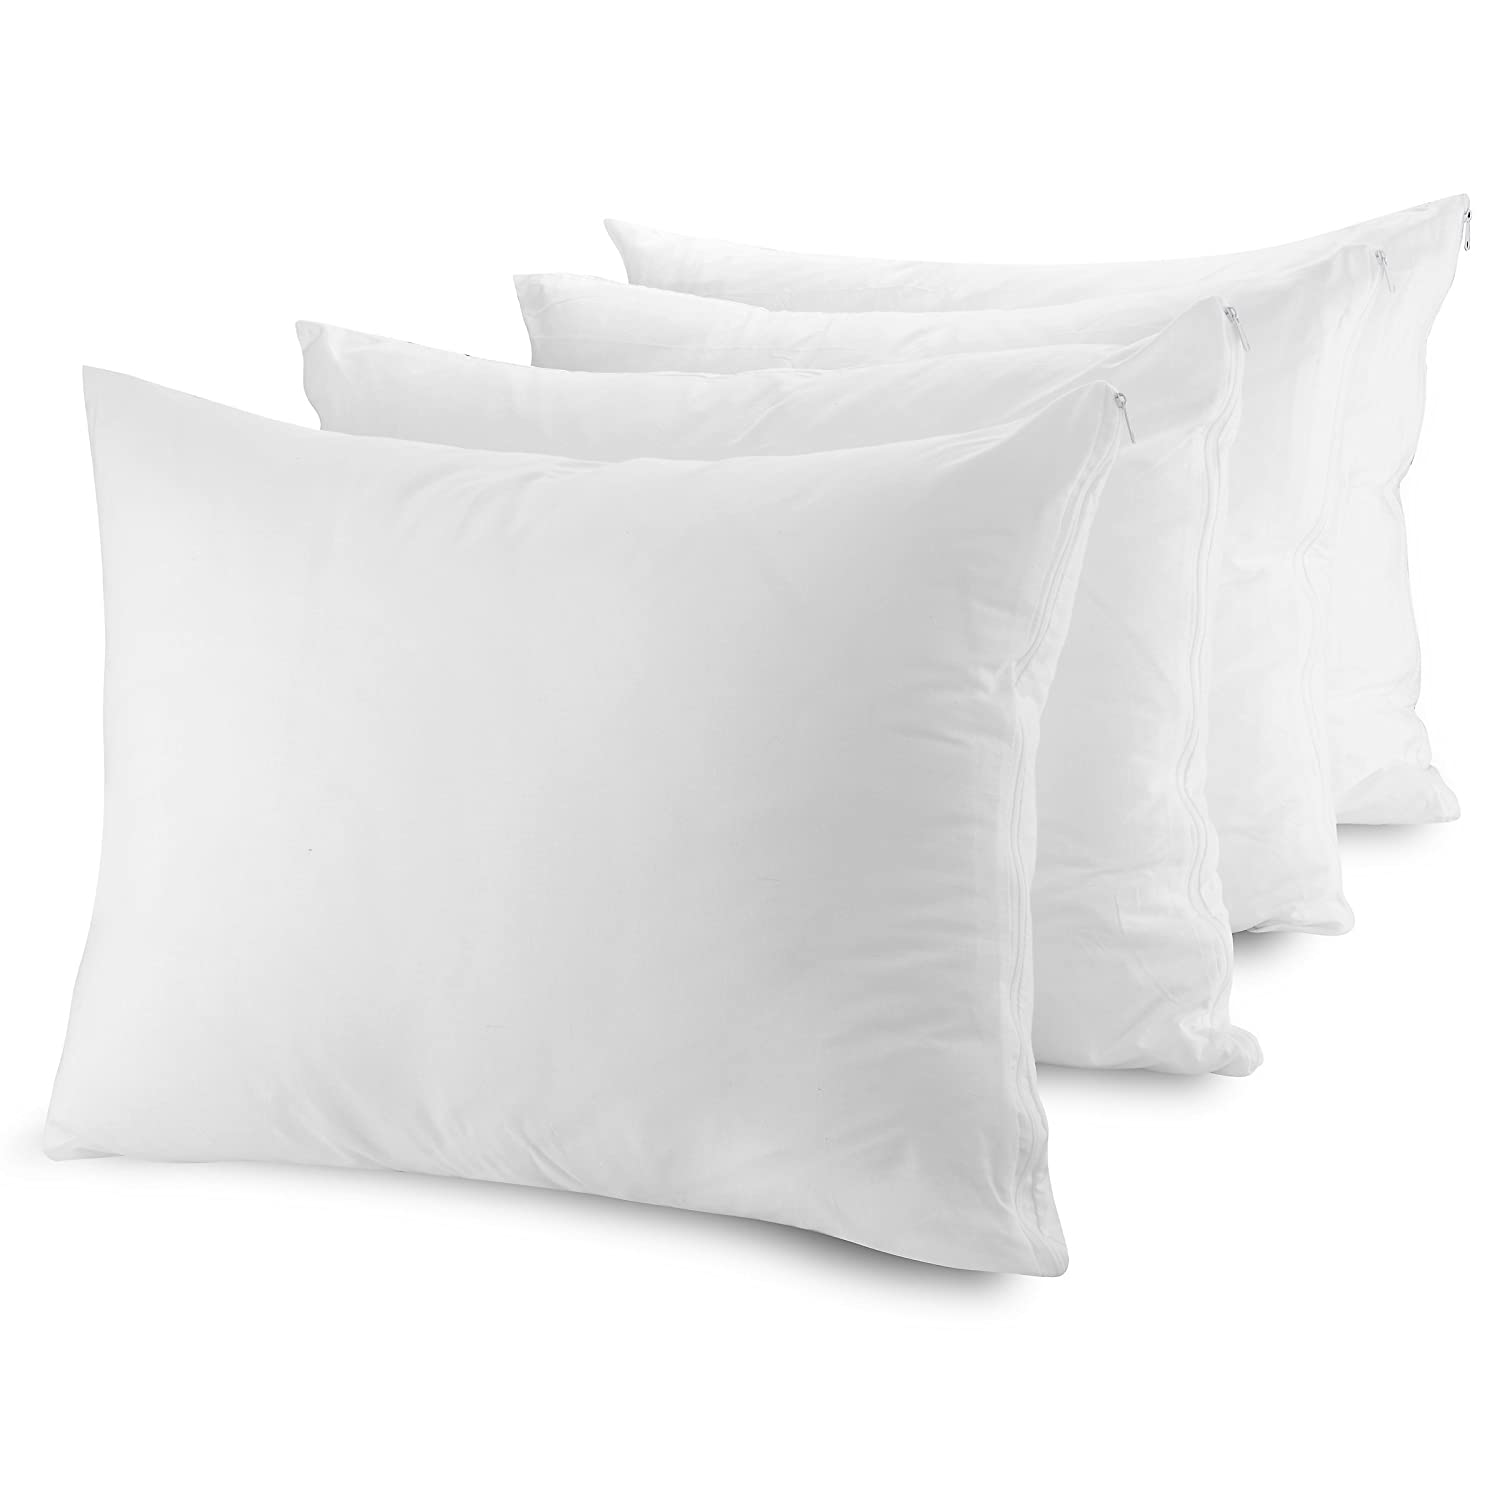 Zippered Pillow Protectors Hypoallergenic Cotton/Poly Breathable Pillow Covers Soft and Quiet (Set of 2 Standard Size) White Pillow Cases Mastertex SYNCHKG044448